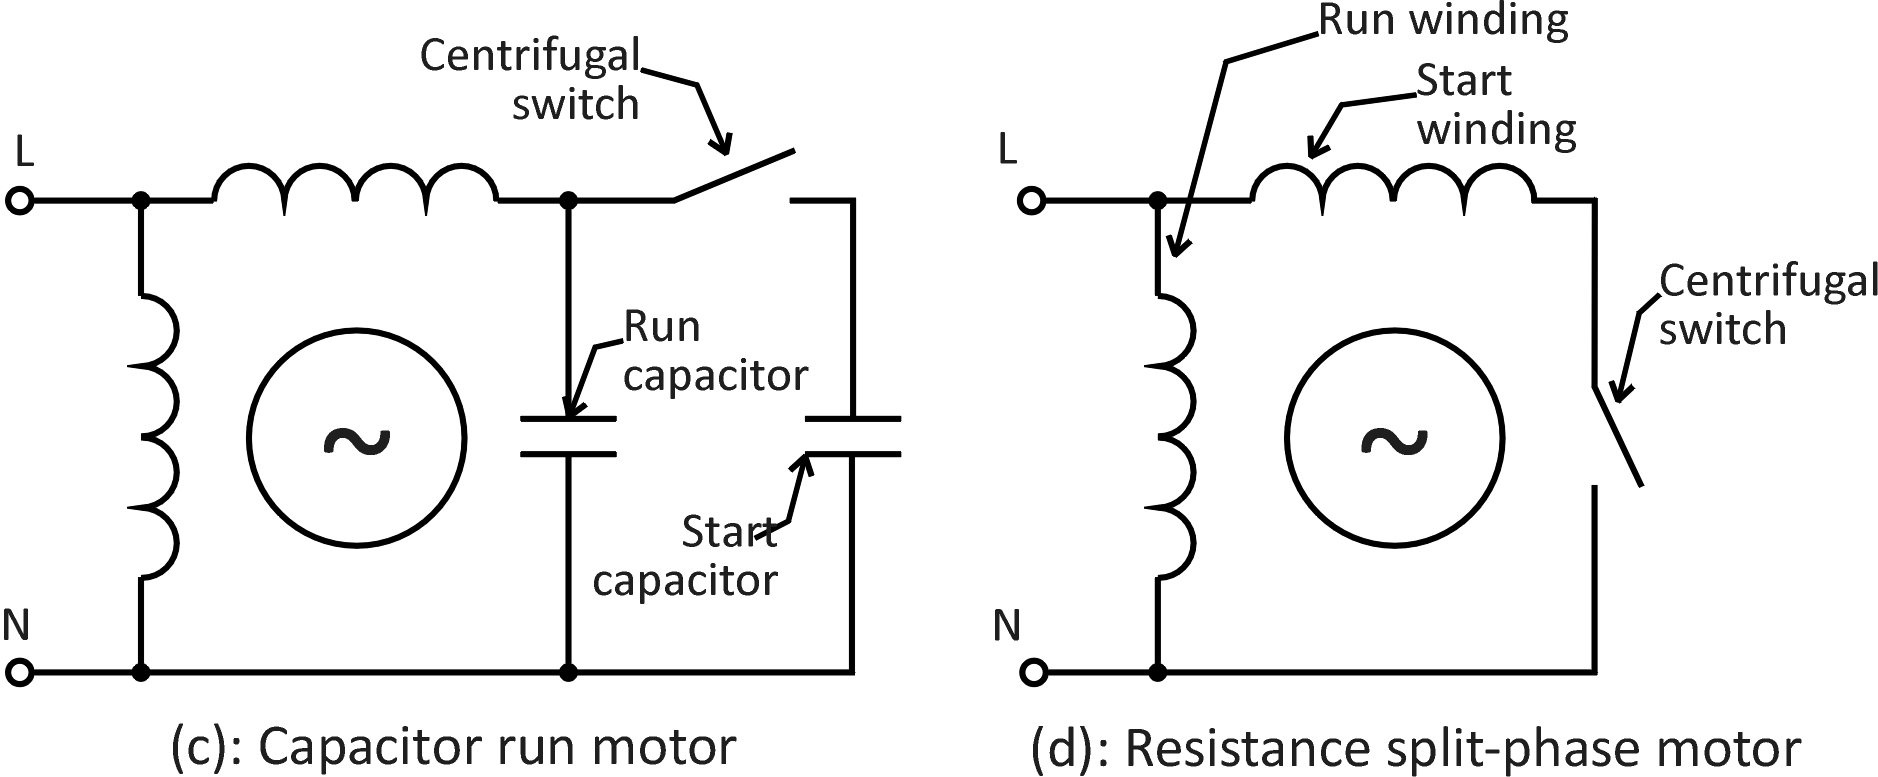 [SODI_2457]   What is the wiring of a single-phase motor? - Quora | Wiring Diagram Of Single Phase Motor |  | Quora